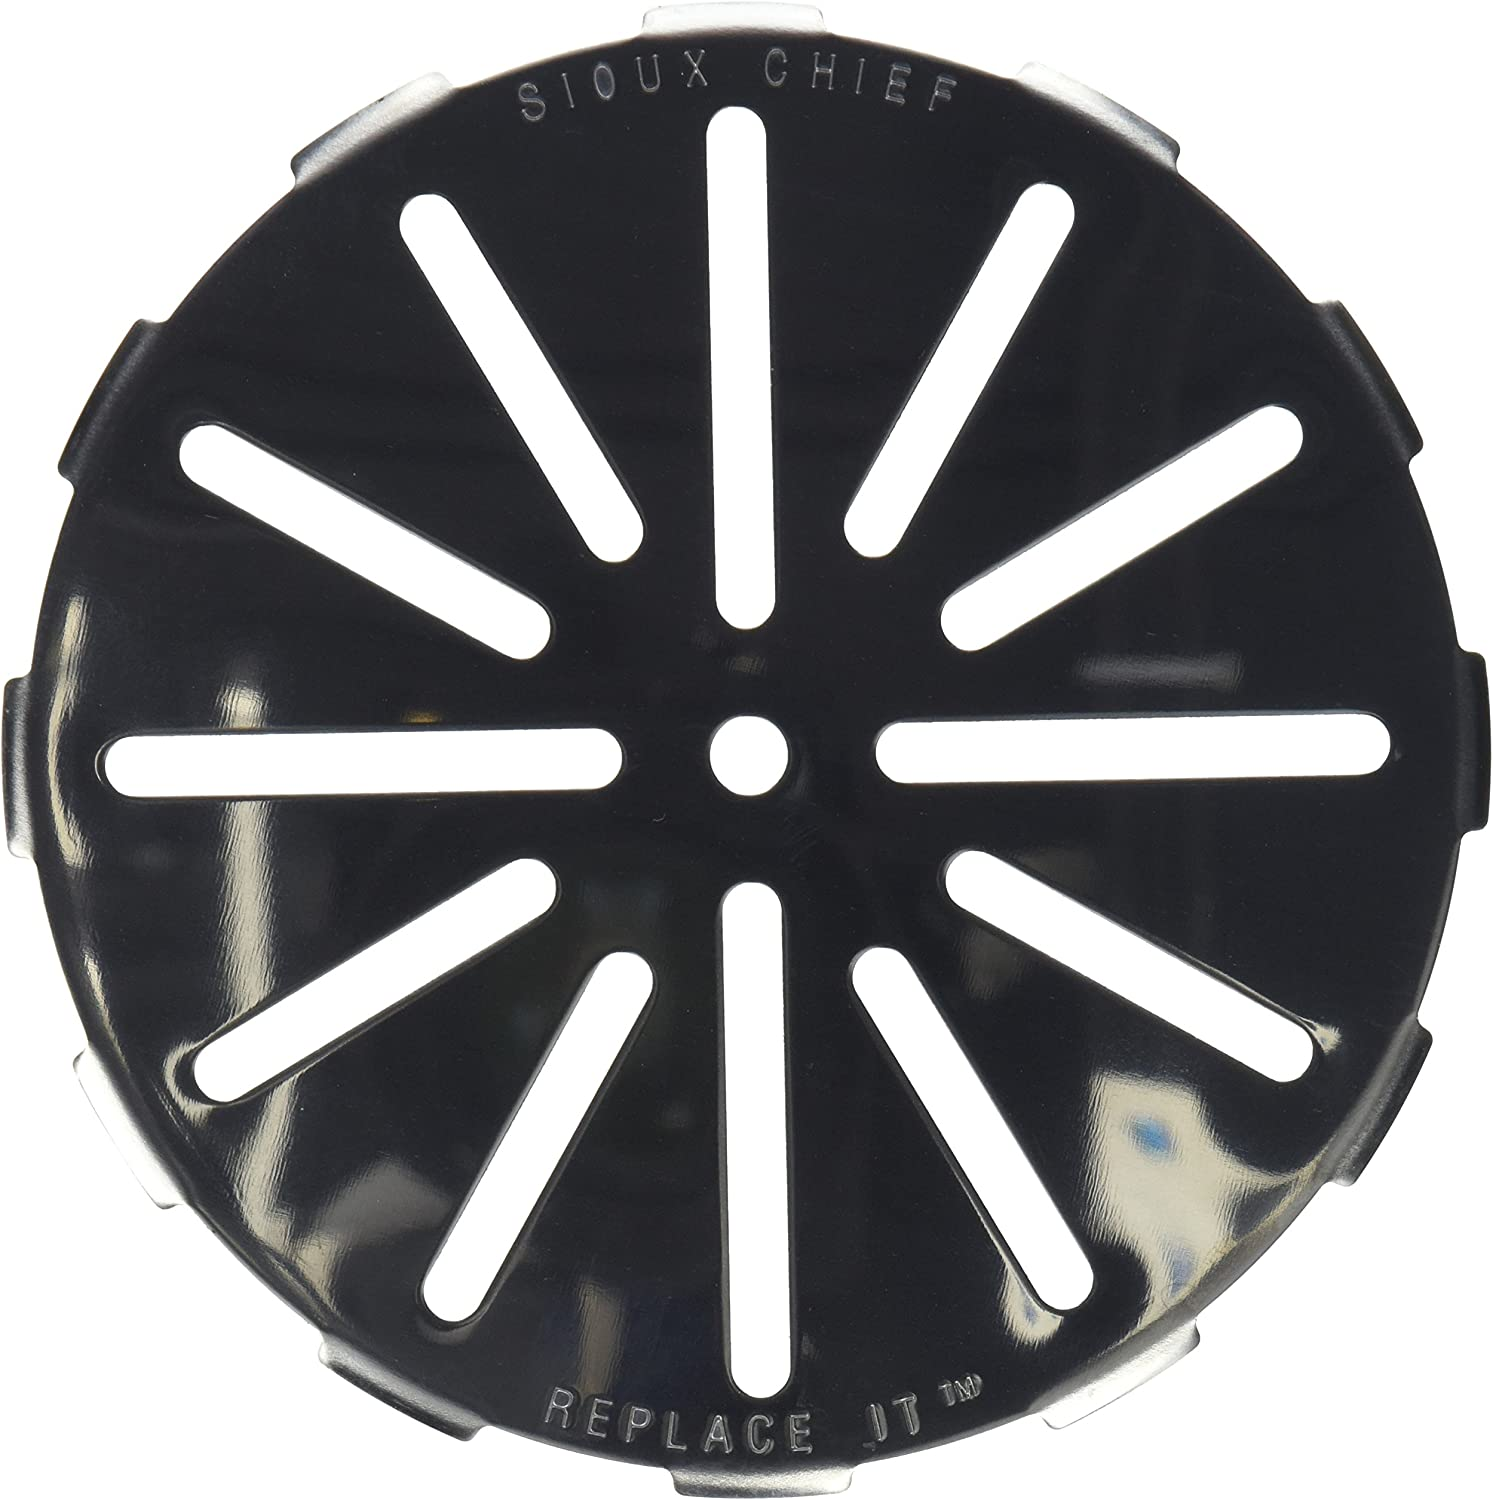 Sioux Chief 847-7 Adjustable Replacement Floor Drain Strainer